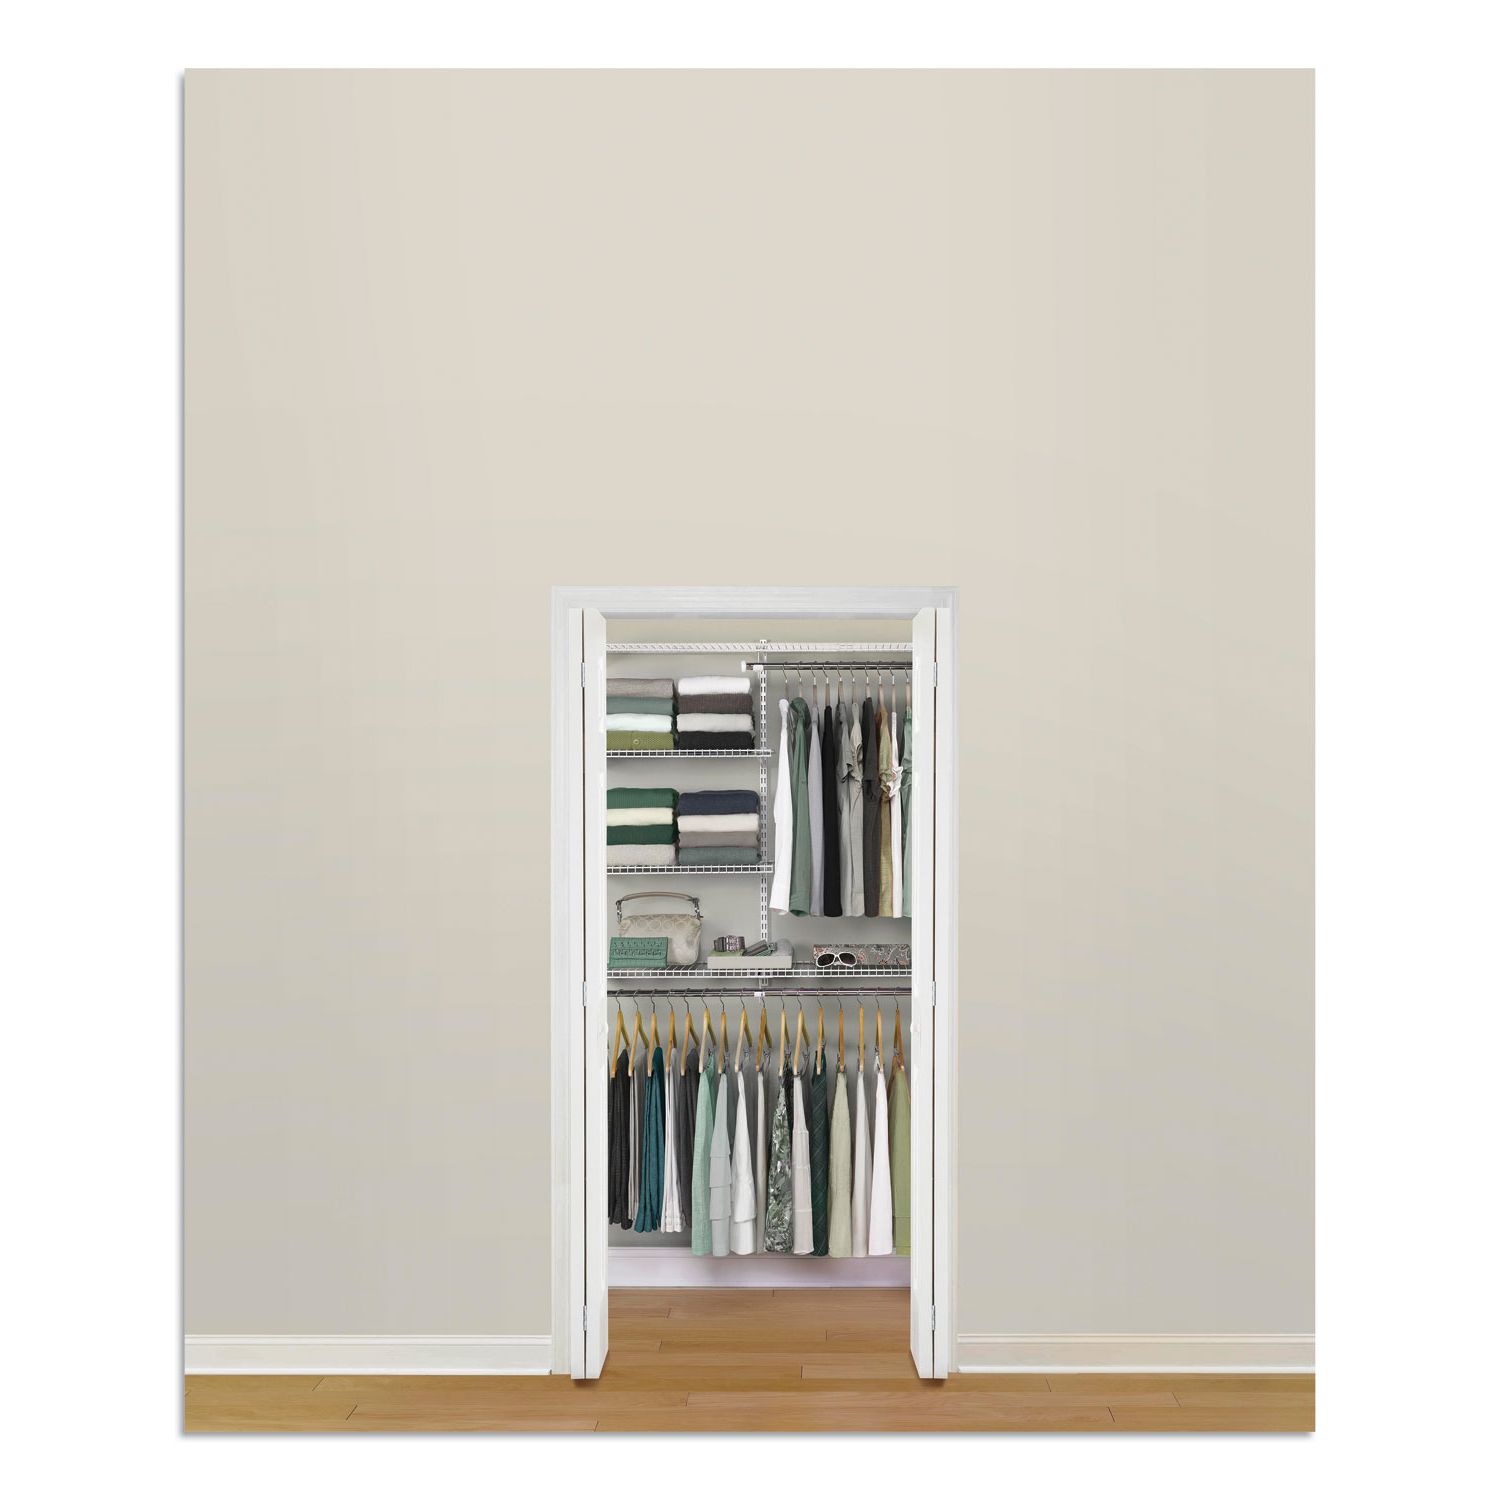 Kit Bookcases Intended For Current Shelving Units/bookcases (View 5 of 20)